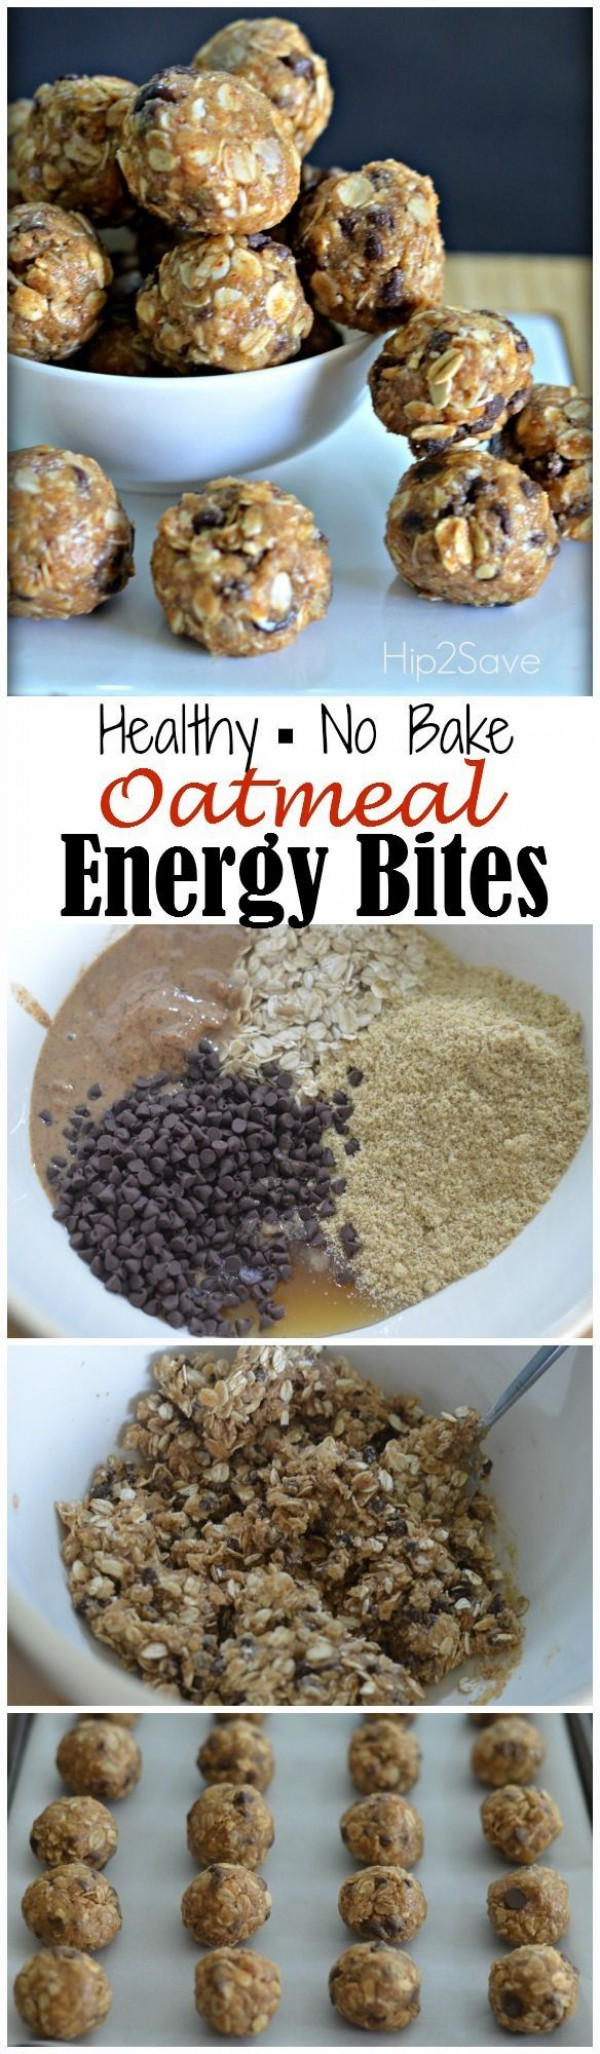 Check out this recipe for breakfast oatmeal energy bites. Yummy! #RecipeIdeas @recipes_to_go